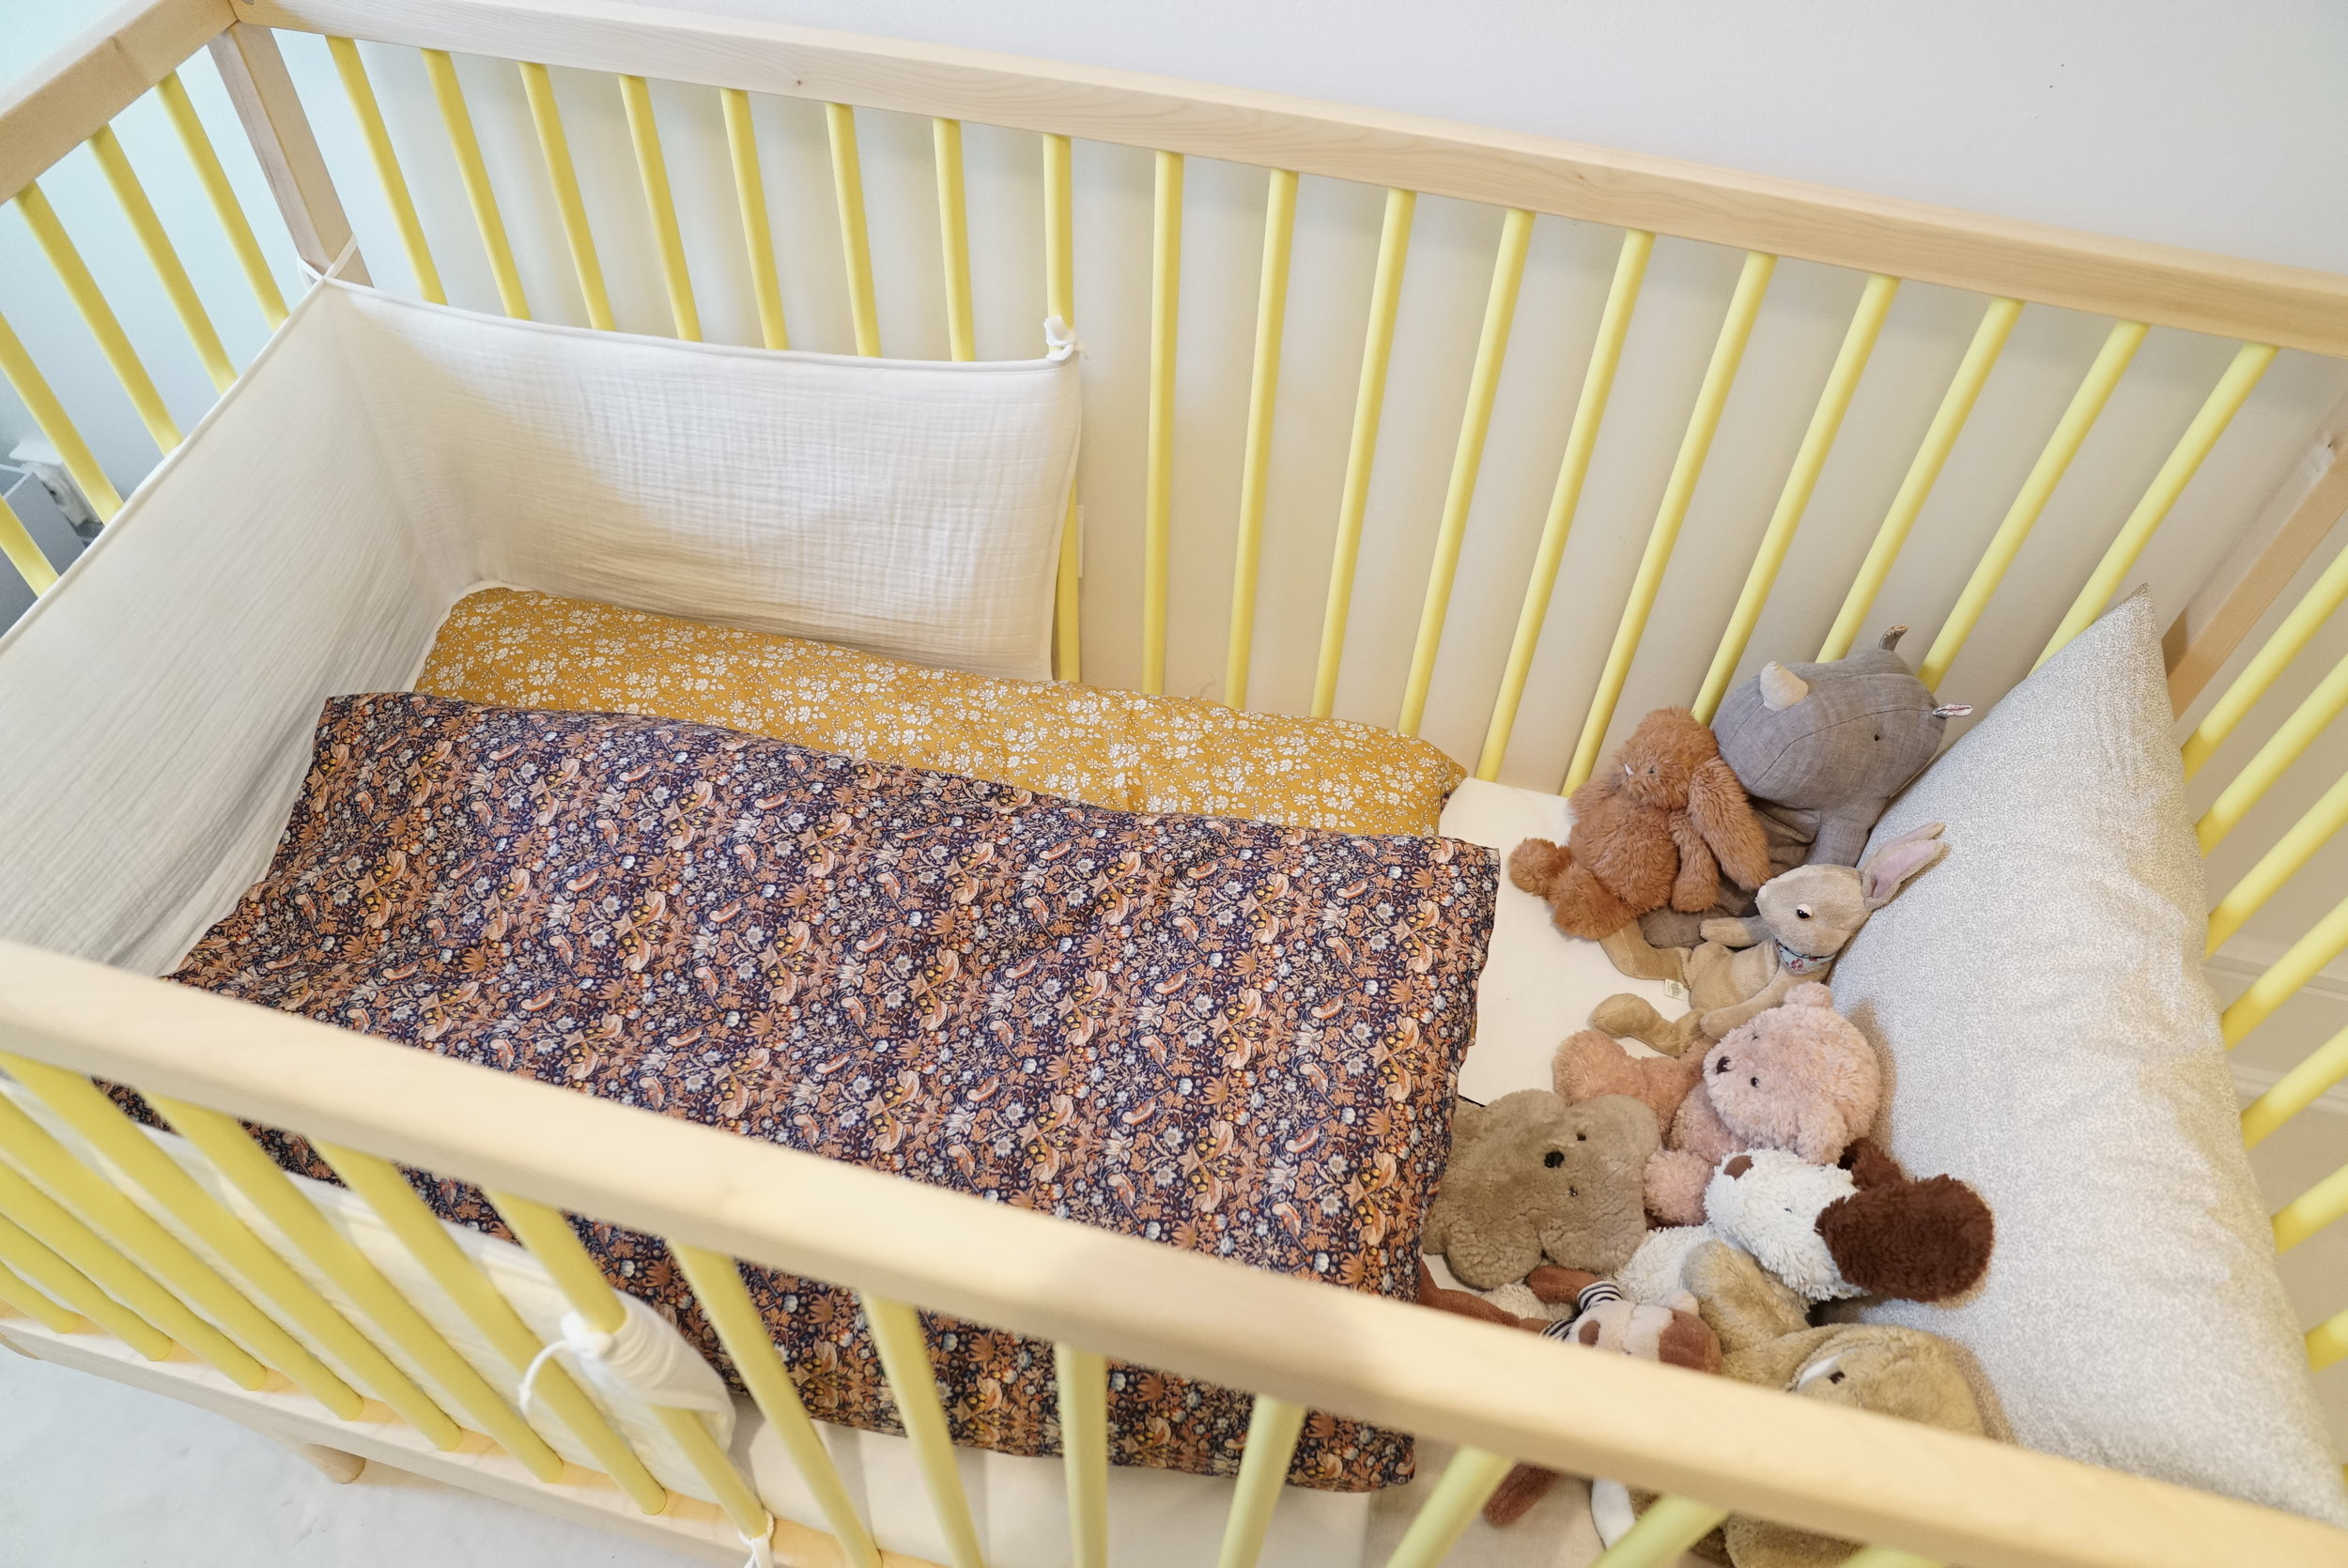 The  Caravan Crib  in yellow, and  bed bumper  in the color 'Milk'. Liberty duvet covers from  Liberty by Lyngholm .